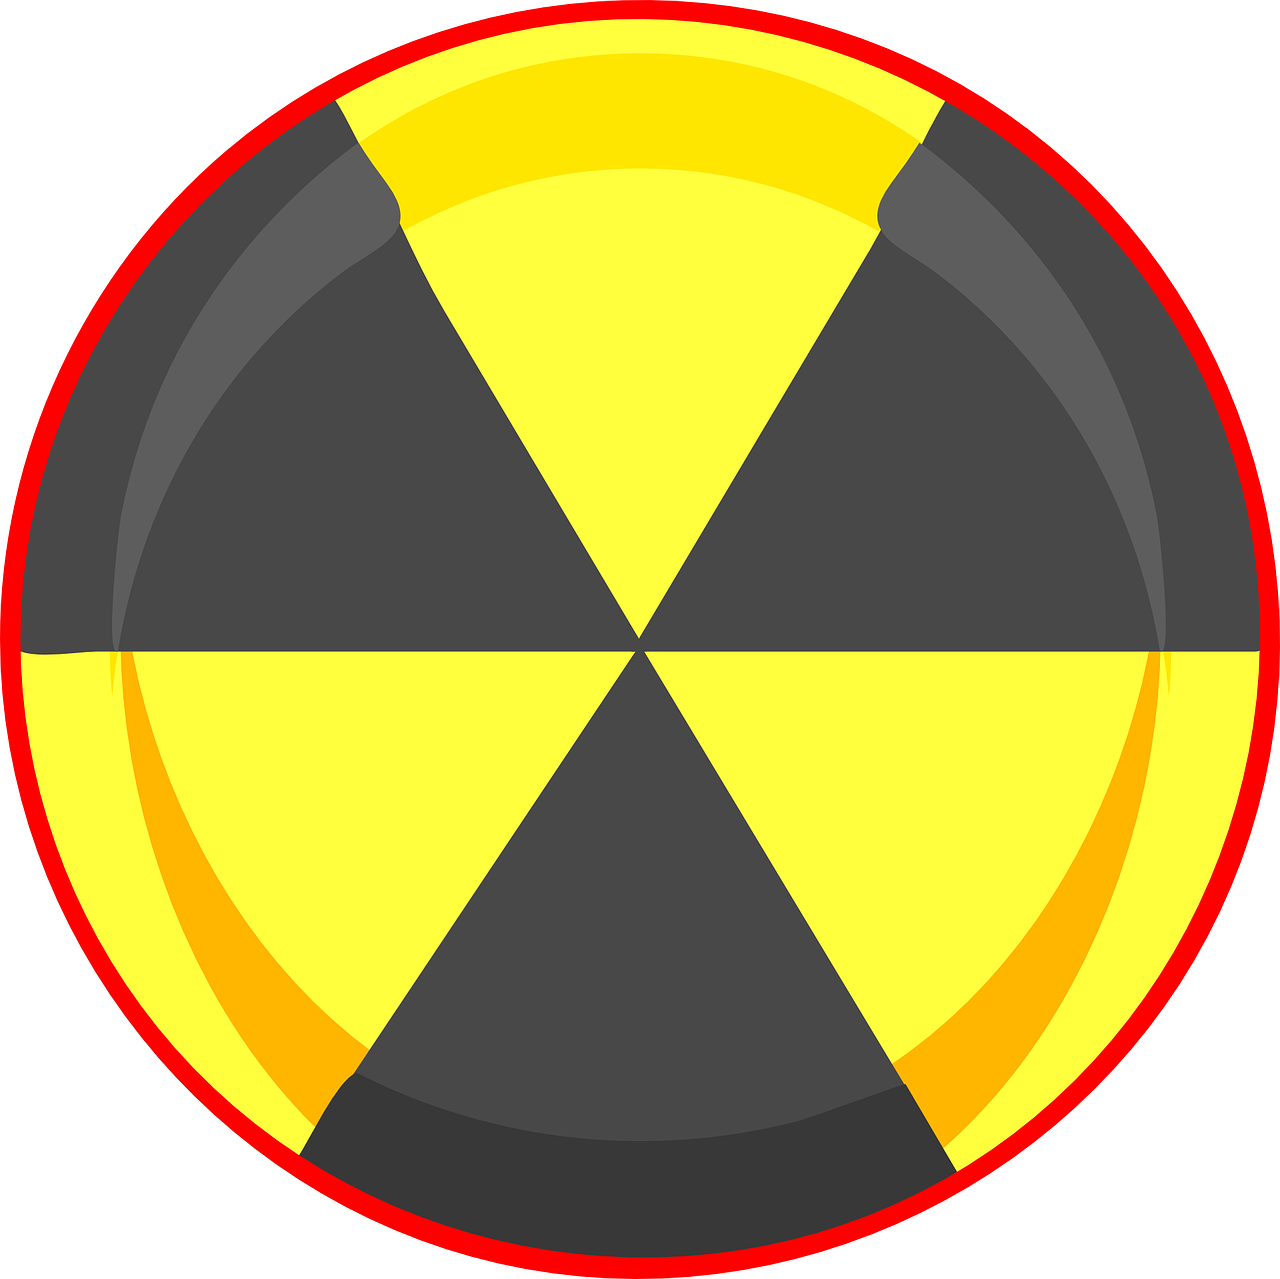 nuclear symbols signs free picture